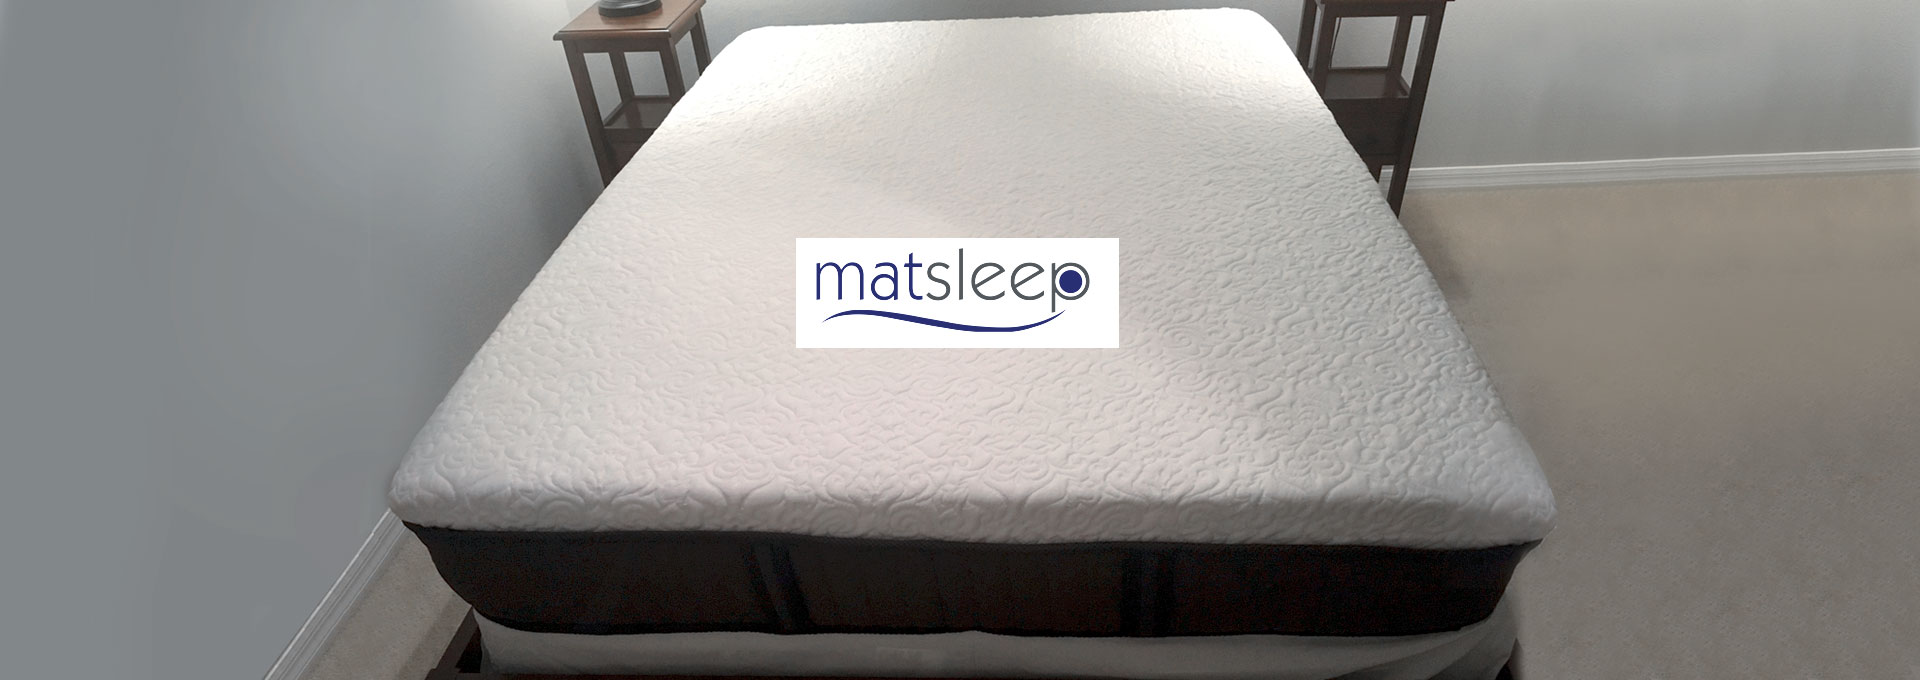 MatSleep Mattress Review